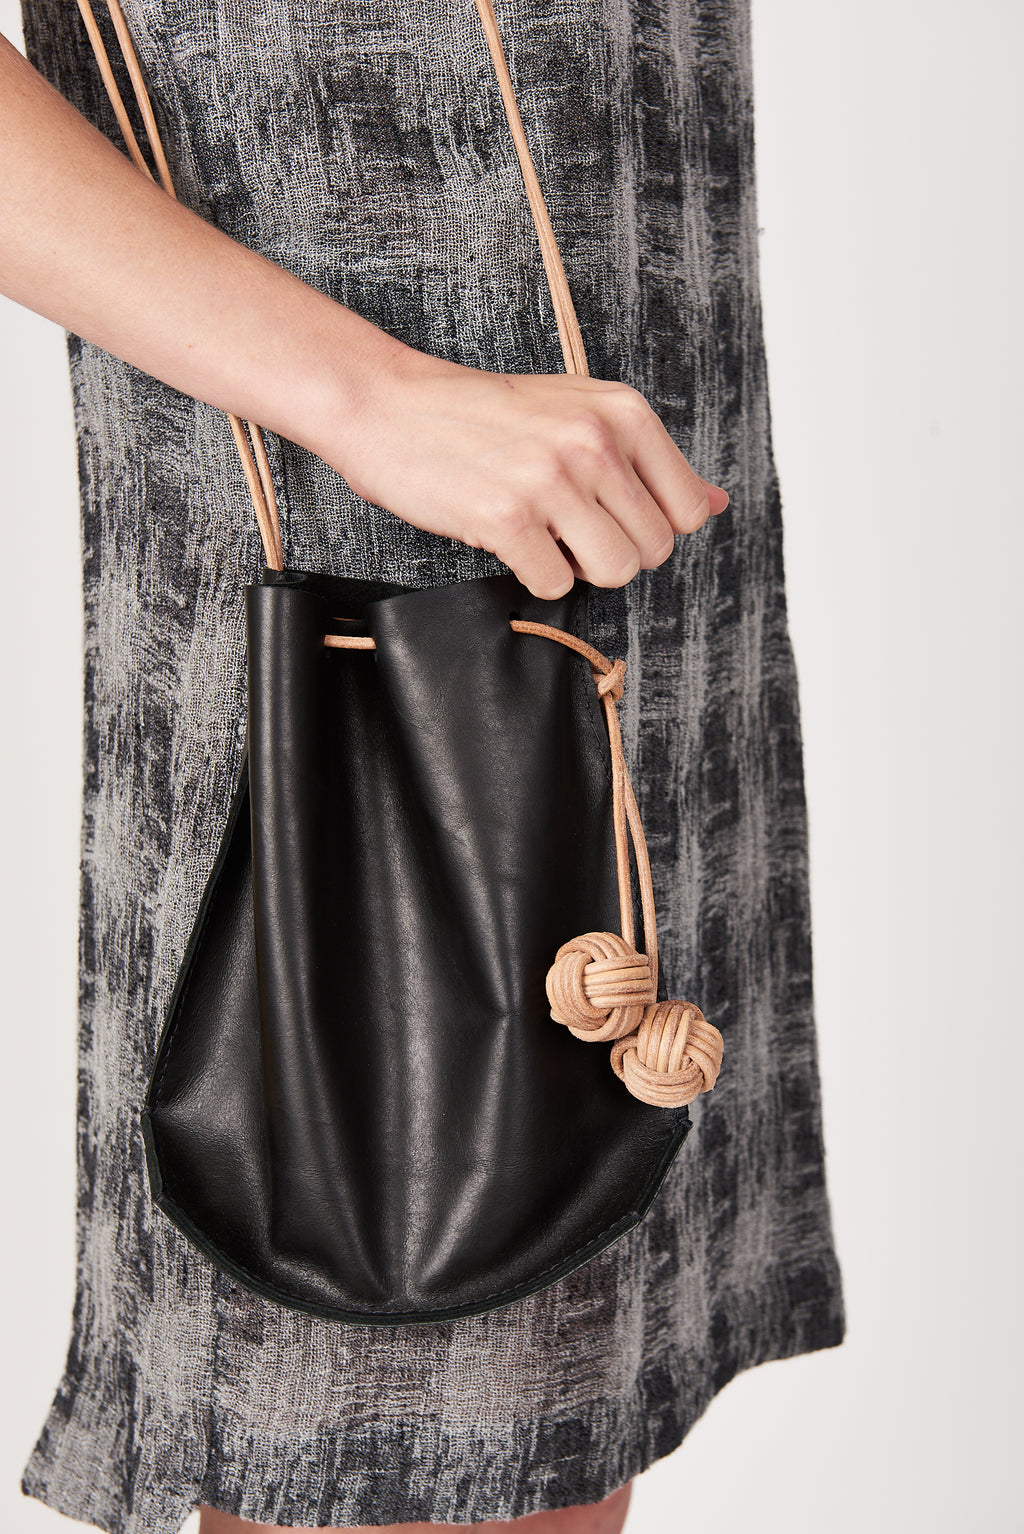 k(not) Bucket Bag in Black/Veg Tan Strap